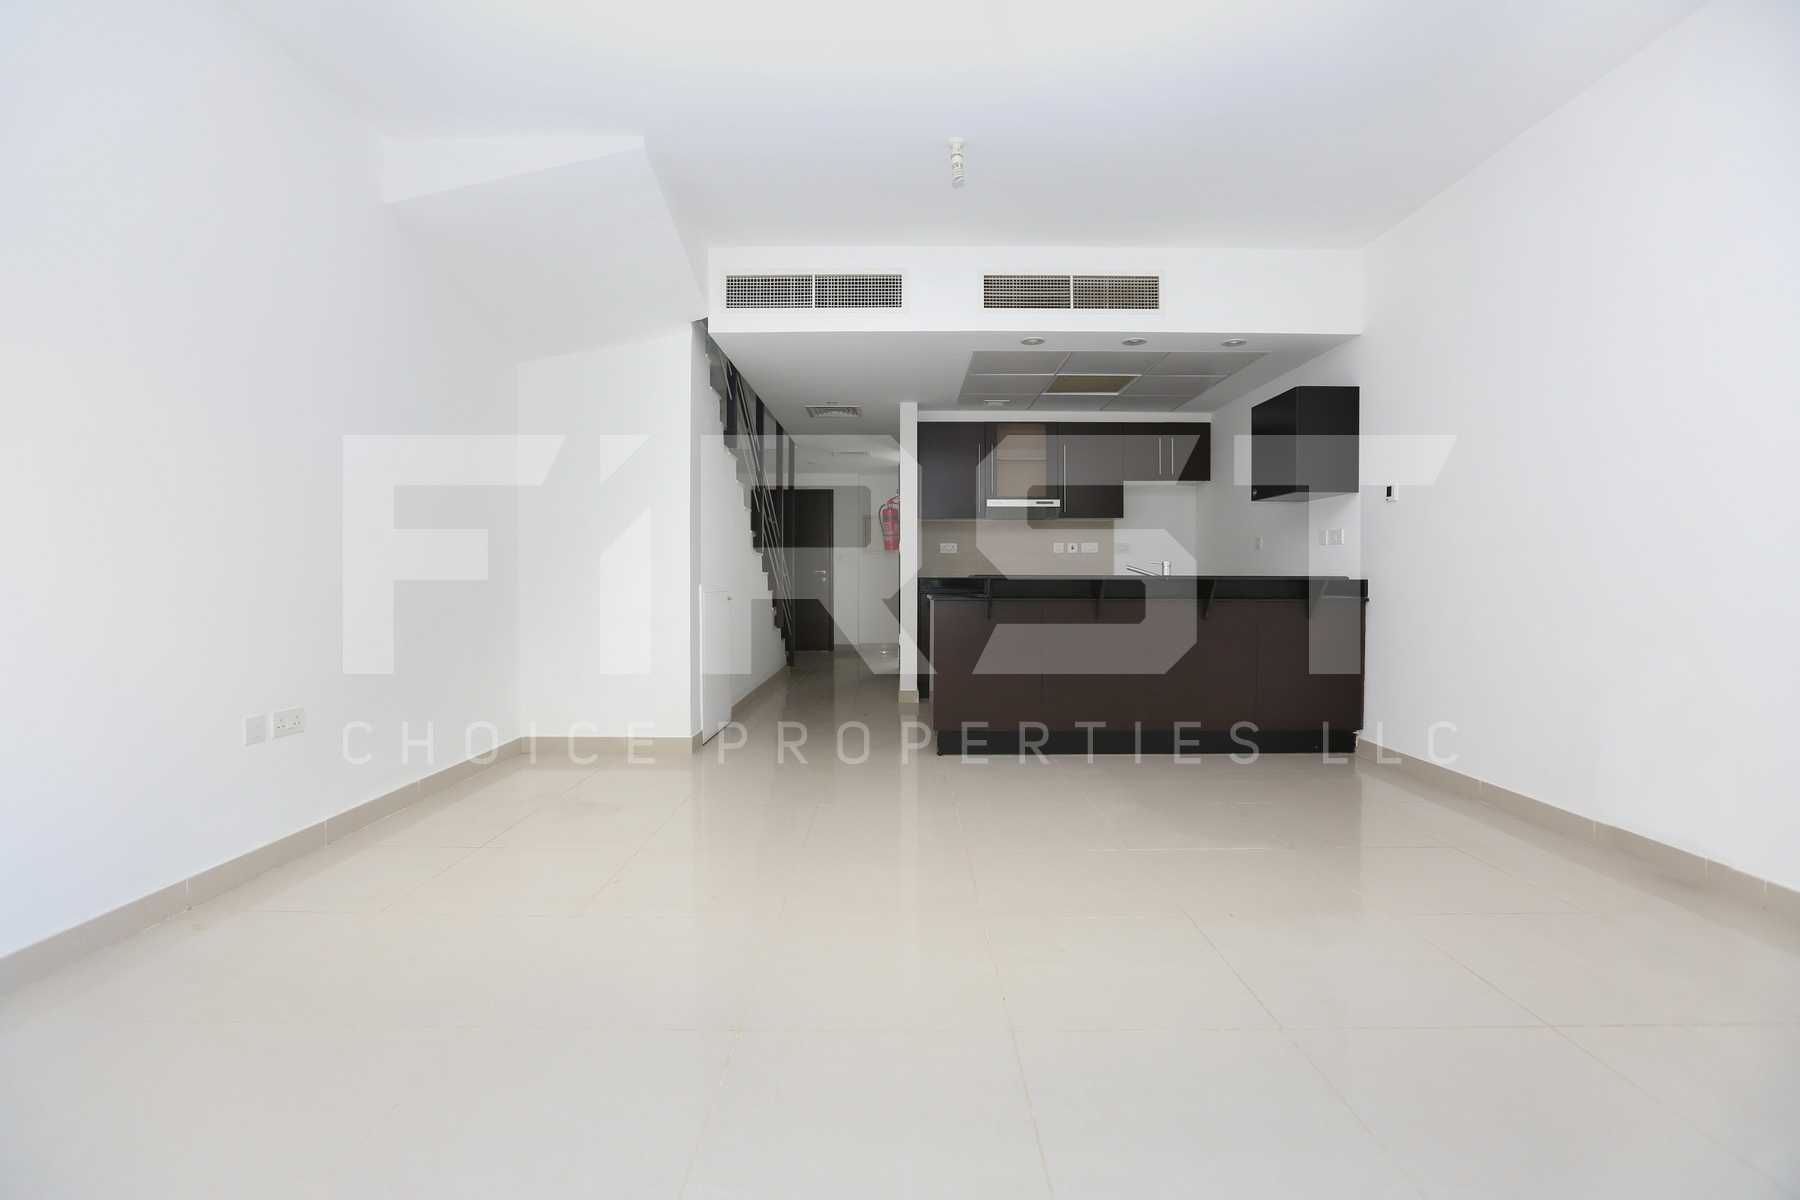 Internal Photo of 2 Bedroom Villa in Al Reef Villas  Al Reef Abu Dhabi UAE 170.2 sq.m 1832 sq.ft (7).jpg